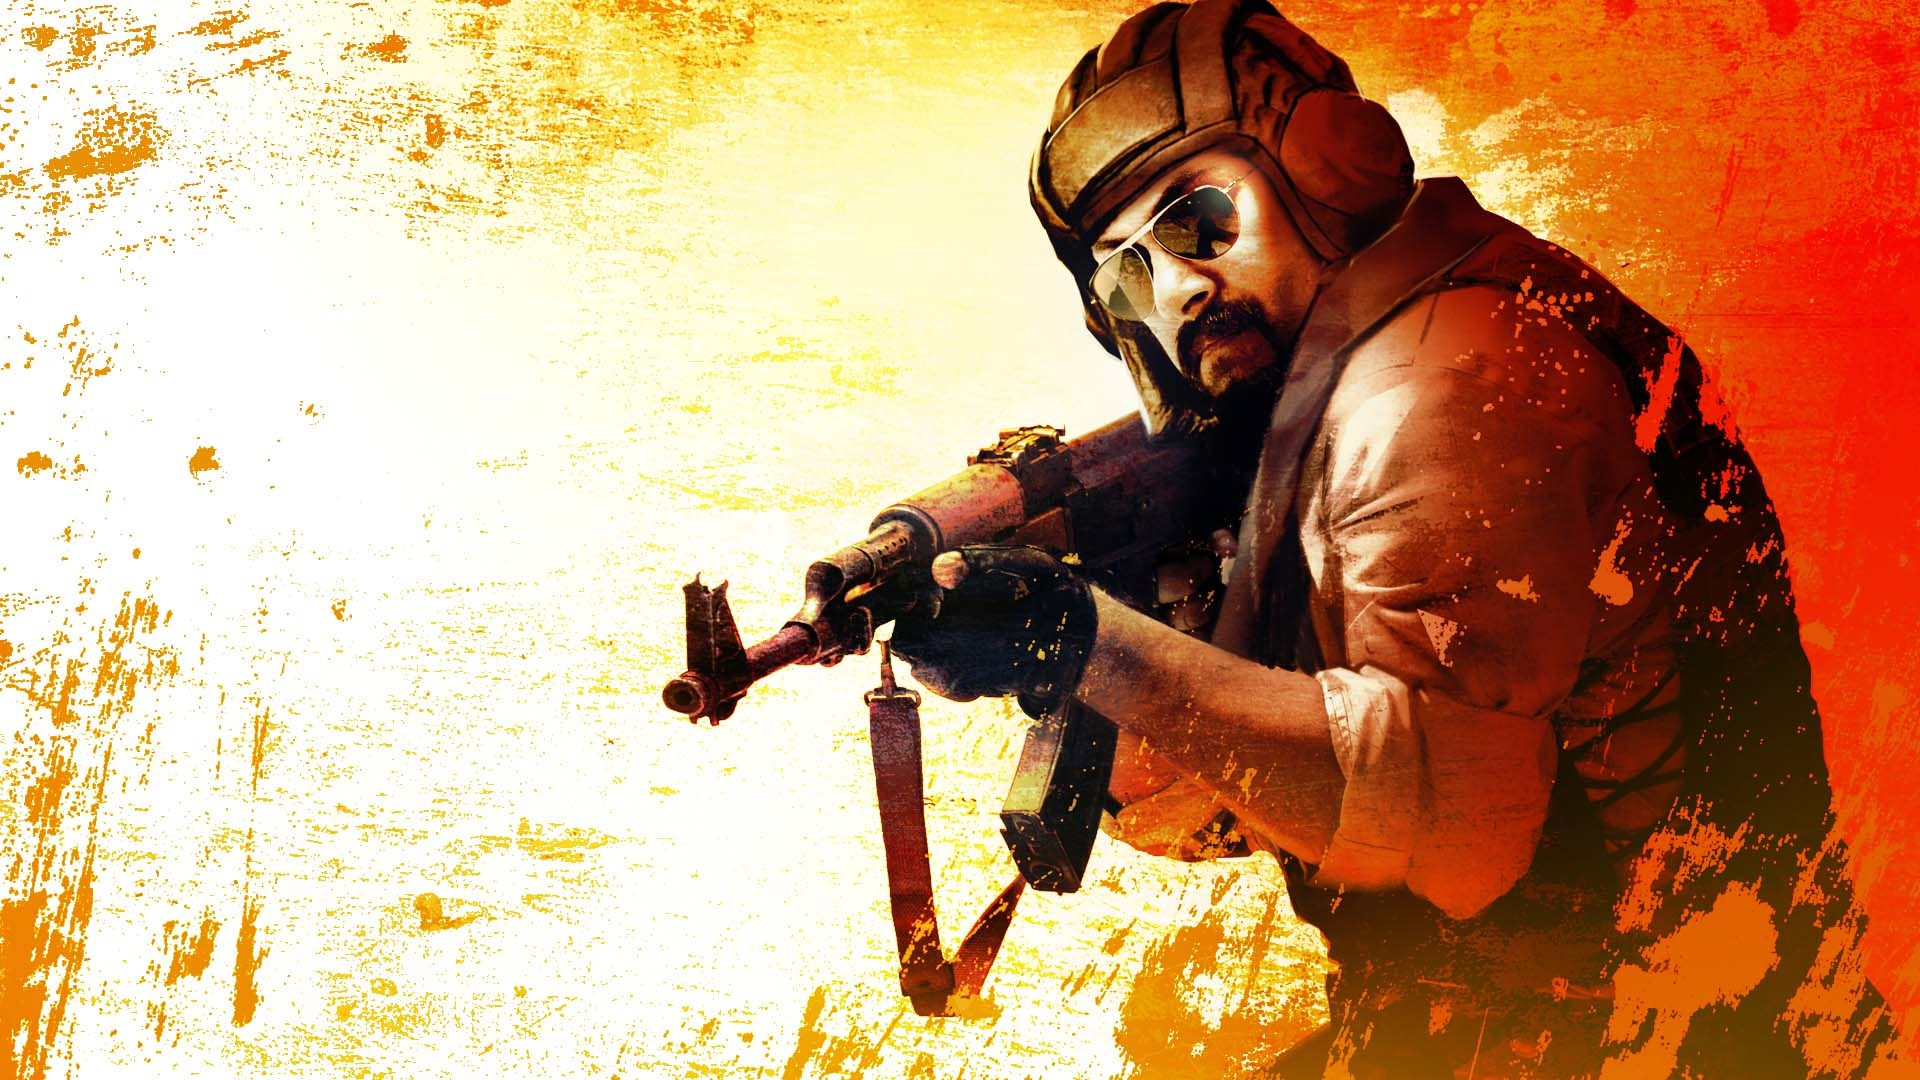 Counter-Strike-Global-Offensive-free-for-desktop-Marlow-Fletcher-1920x1080-wallpaper-wp3804102